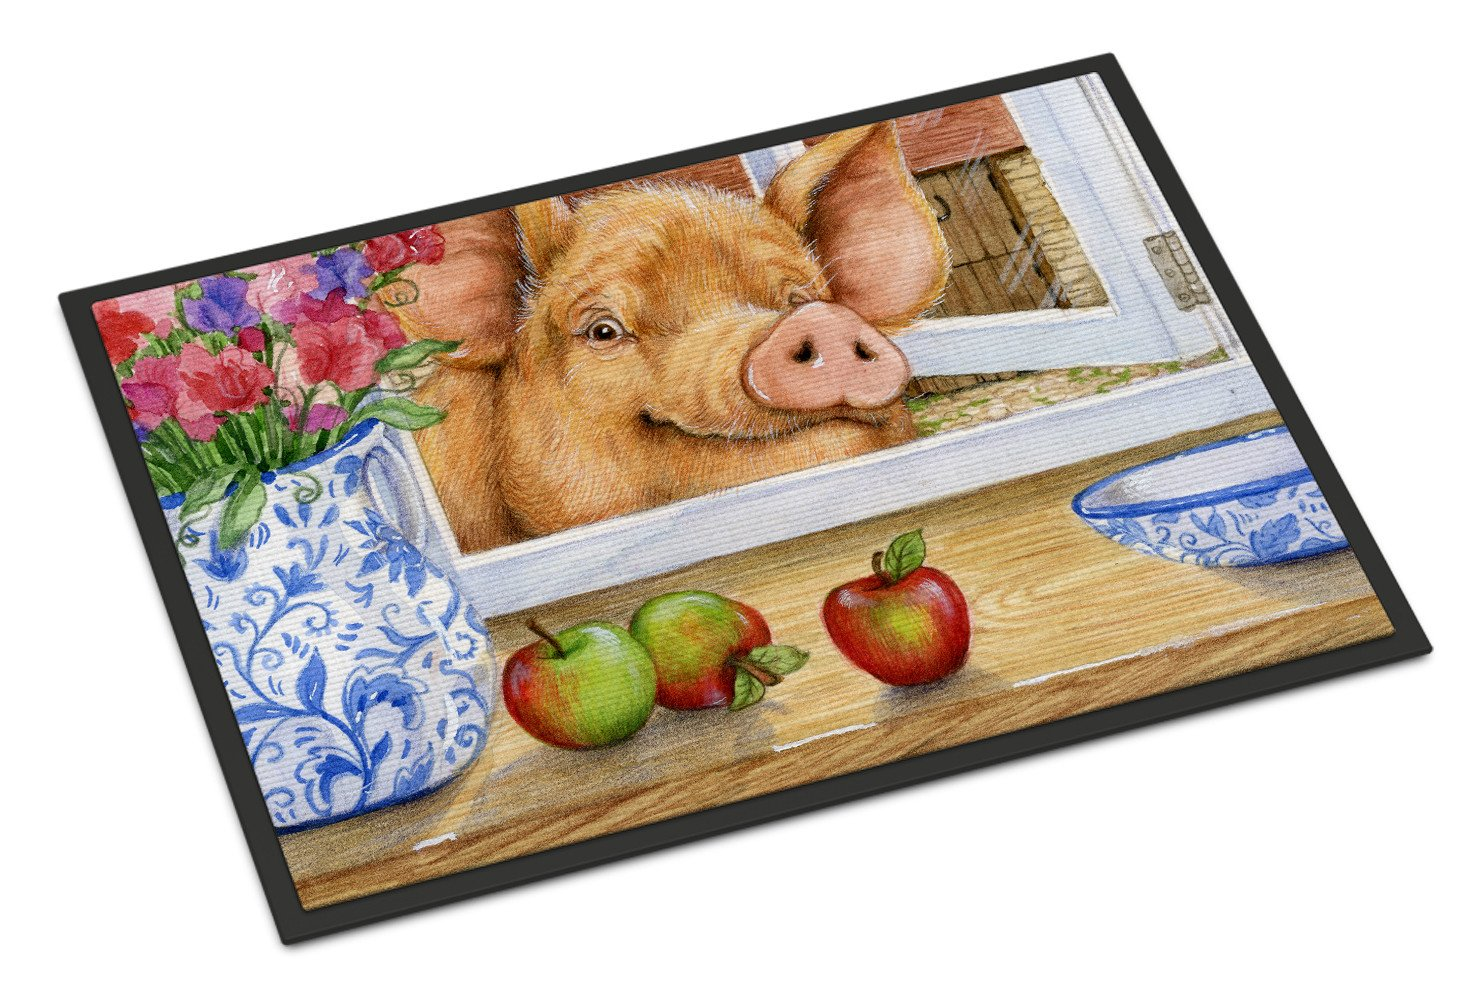 Pig trying to reach the Apple in the Window Indoor or Outdoor Mat 18x27 CDCO0352MAT - the-store.com